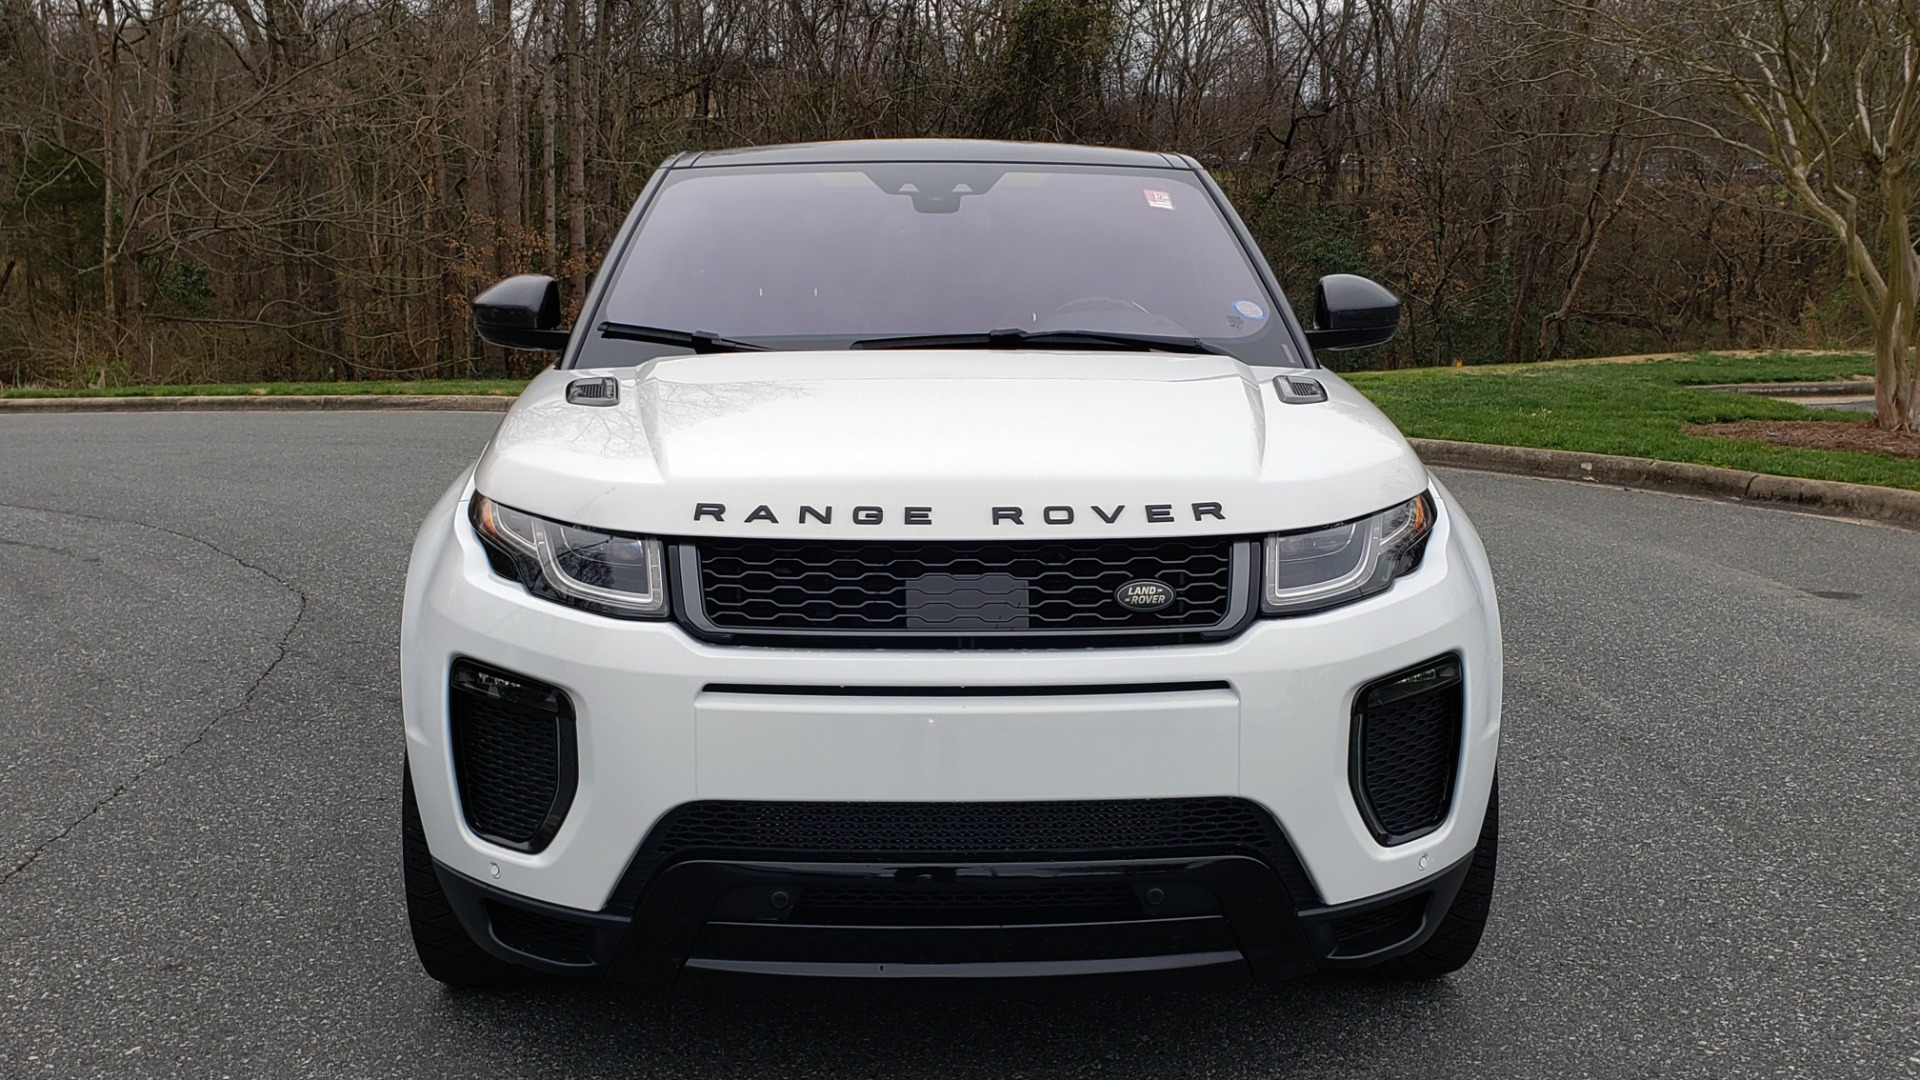 Used 2016 Land Rover RANGE ROVER EVOQUE HSE DYNAMIC / AWD / NAV / PANO-ROOF / REARVIEW / 22-IN WHEELS for sale Sold at Formula Imports in Charlotte NC 28227 24